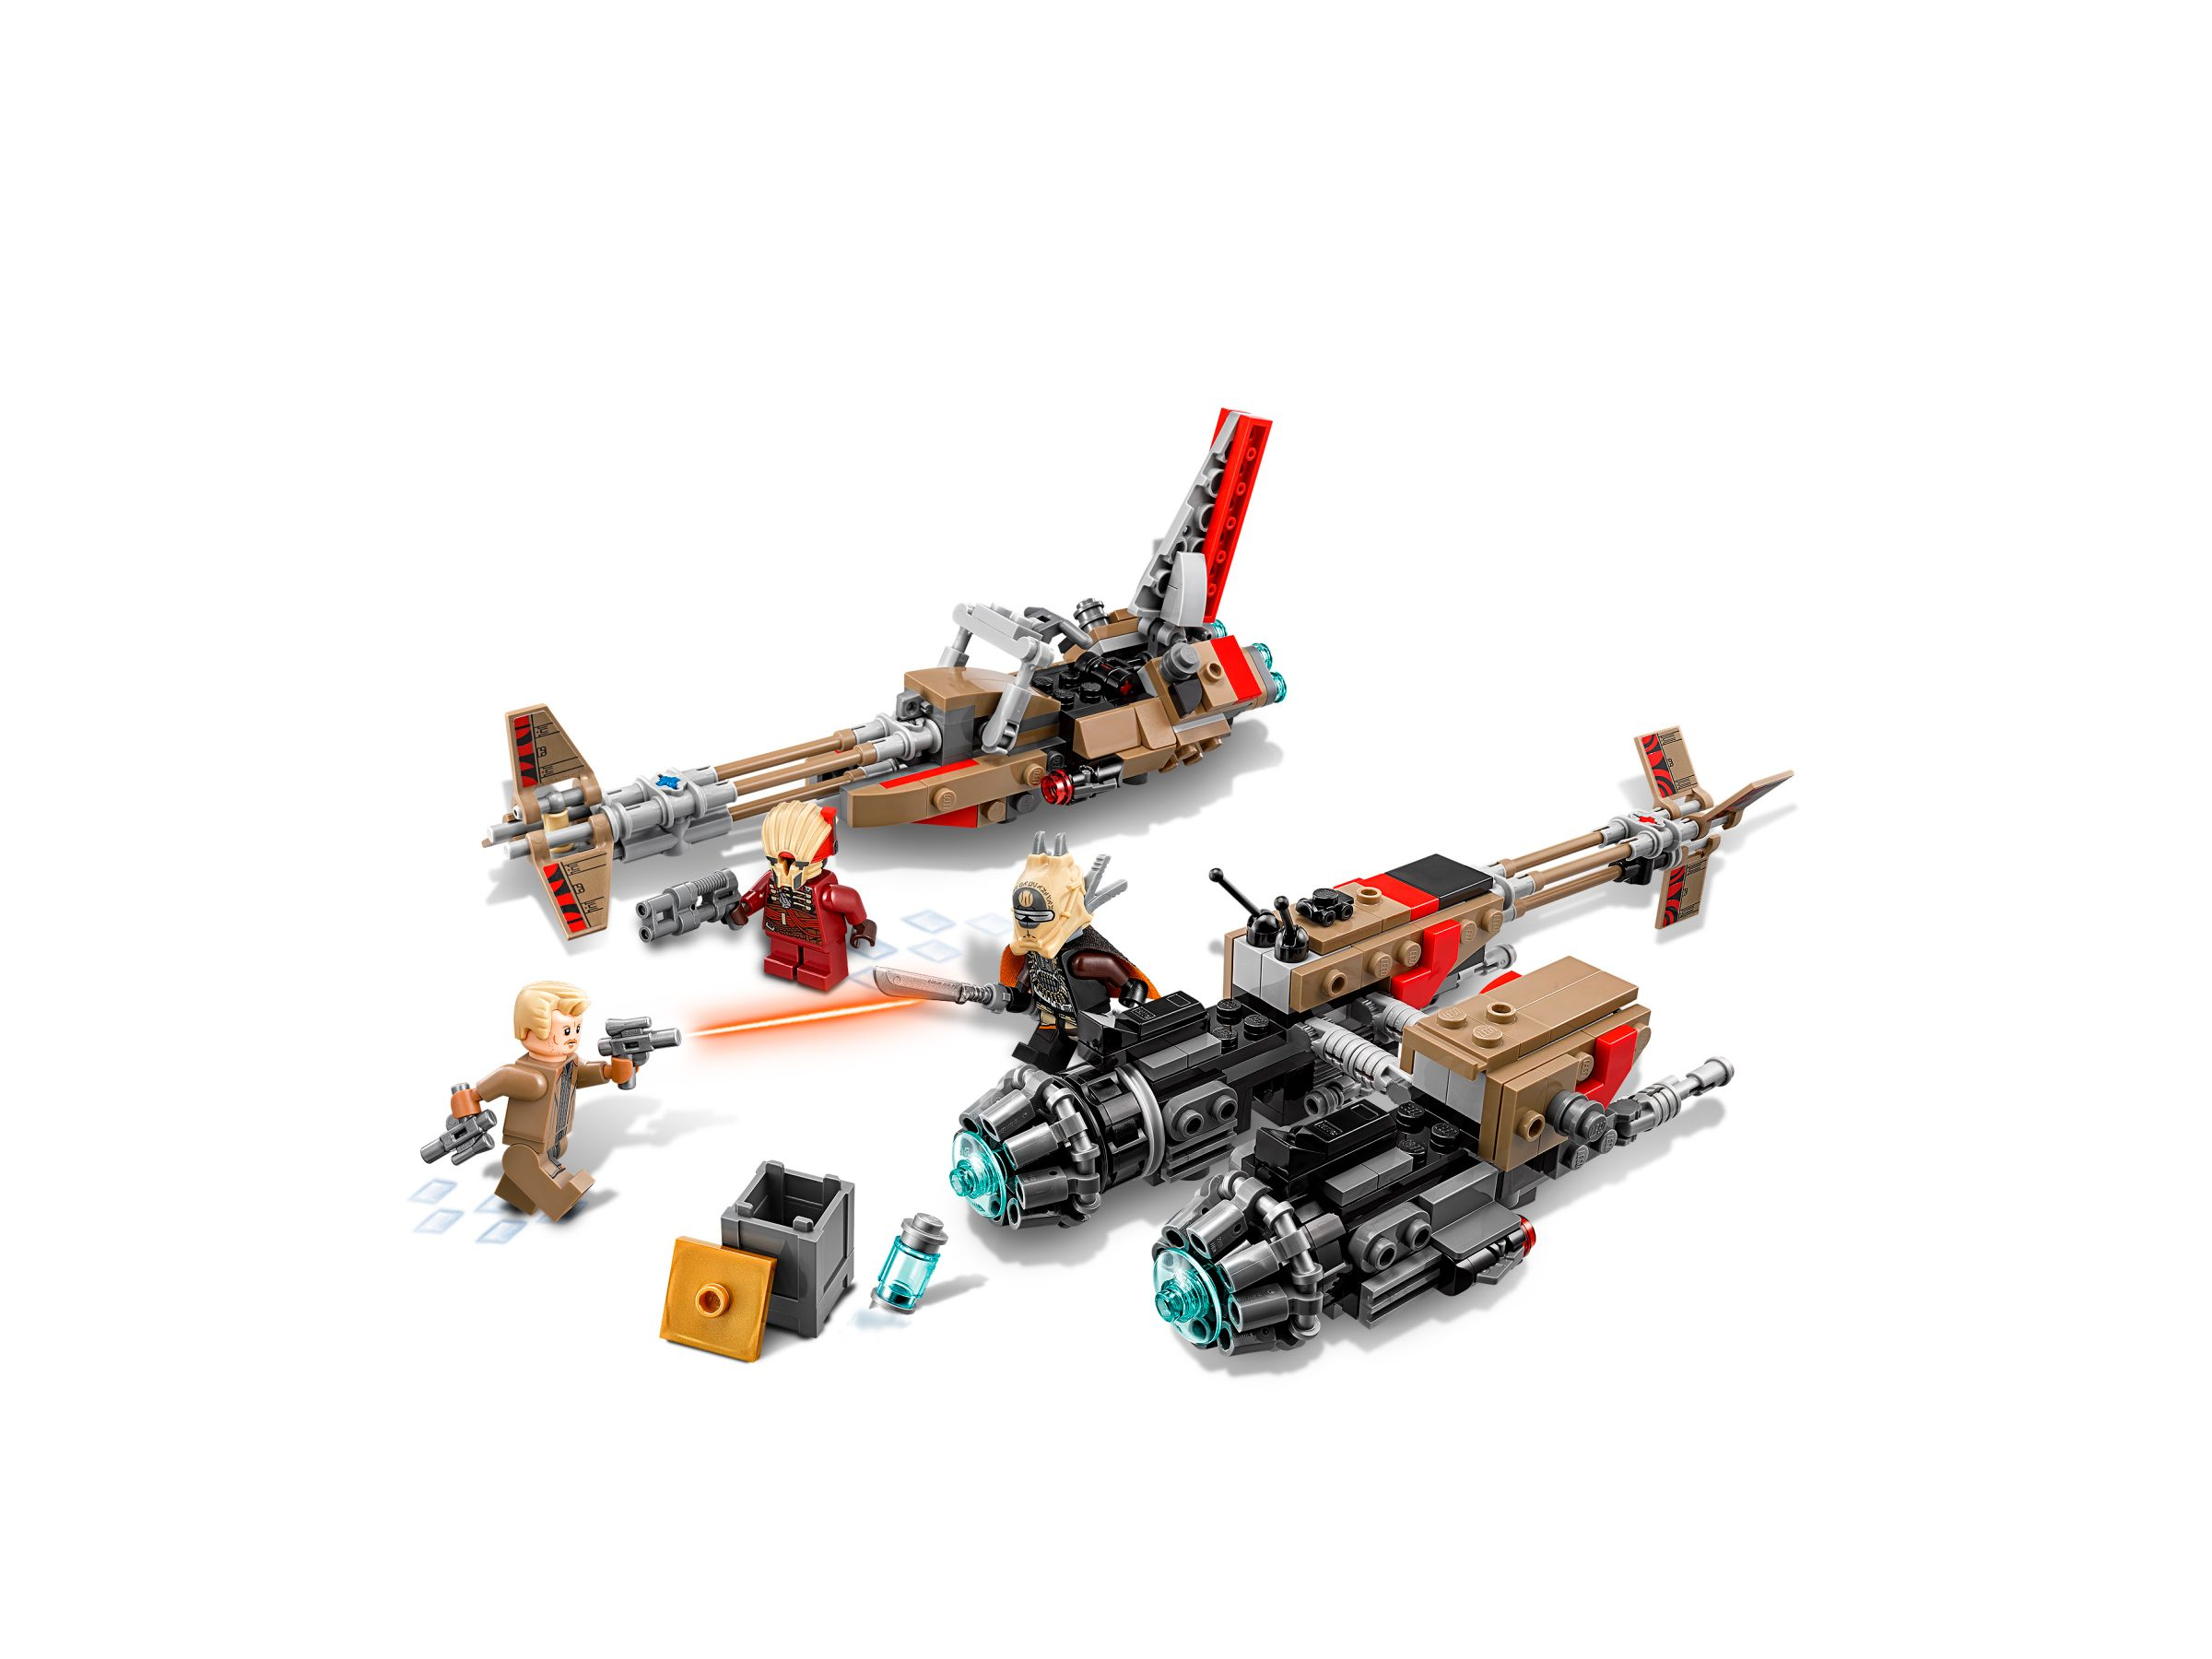 LEGO Star Wars 75215 Cloud-Rider Swoop Bikes™ LEGO_75215_alt3.jpg